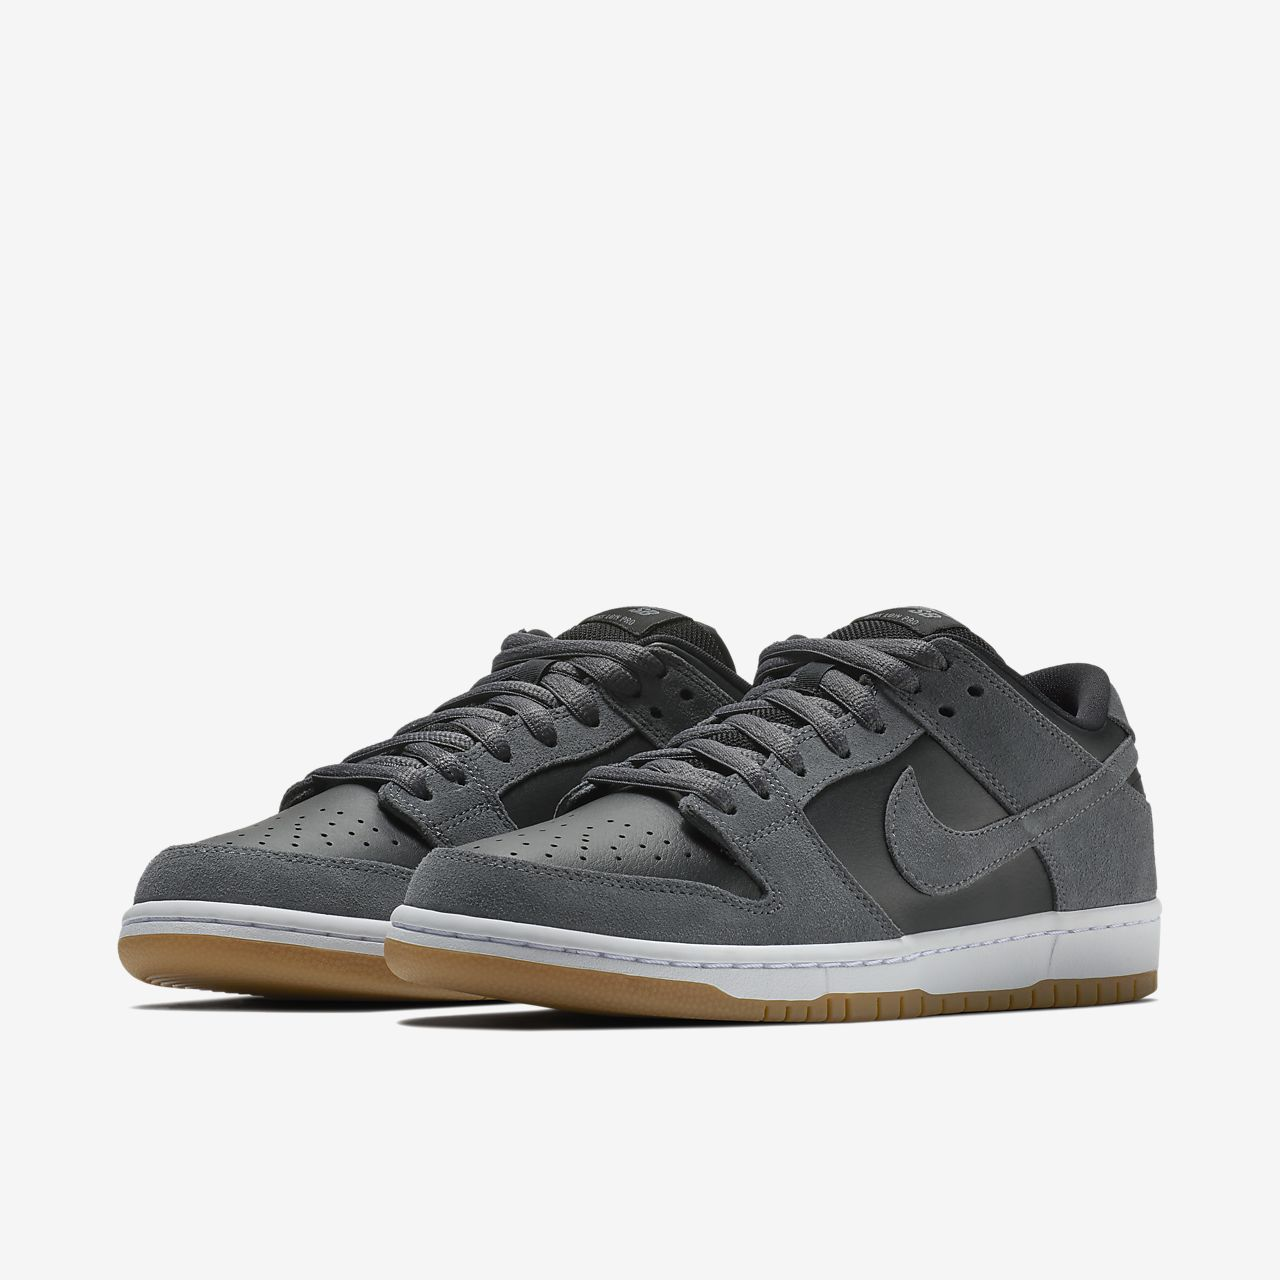 low cost 4a4d4 f9ef6 Nike SB Dunk Low TRD skatesko for herre. Nike.com NO